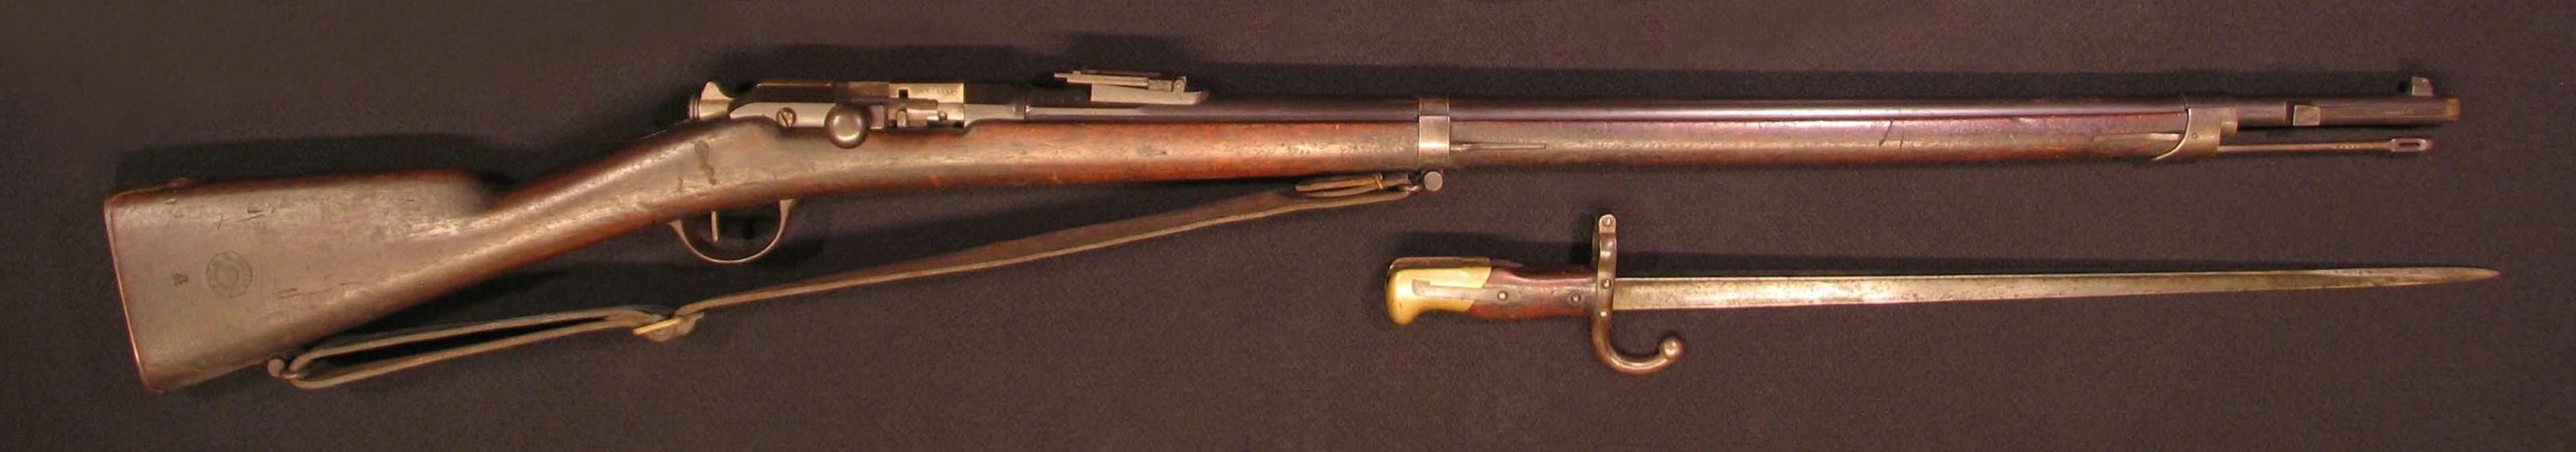 Click image for larger version.  Name:French Mle 1874 Gras Infantry Rifle 01R.JPG Views:24 Size:168.9 KB ID:570706